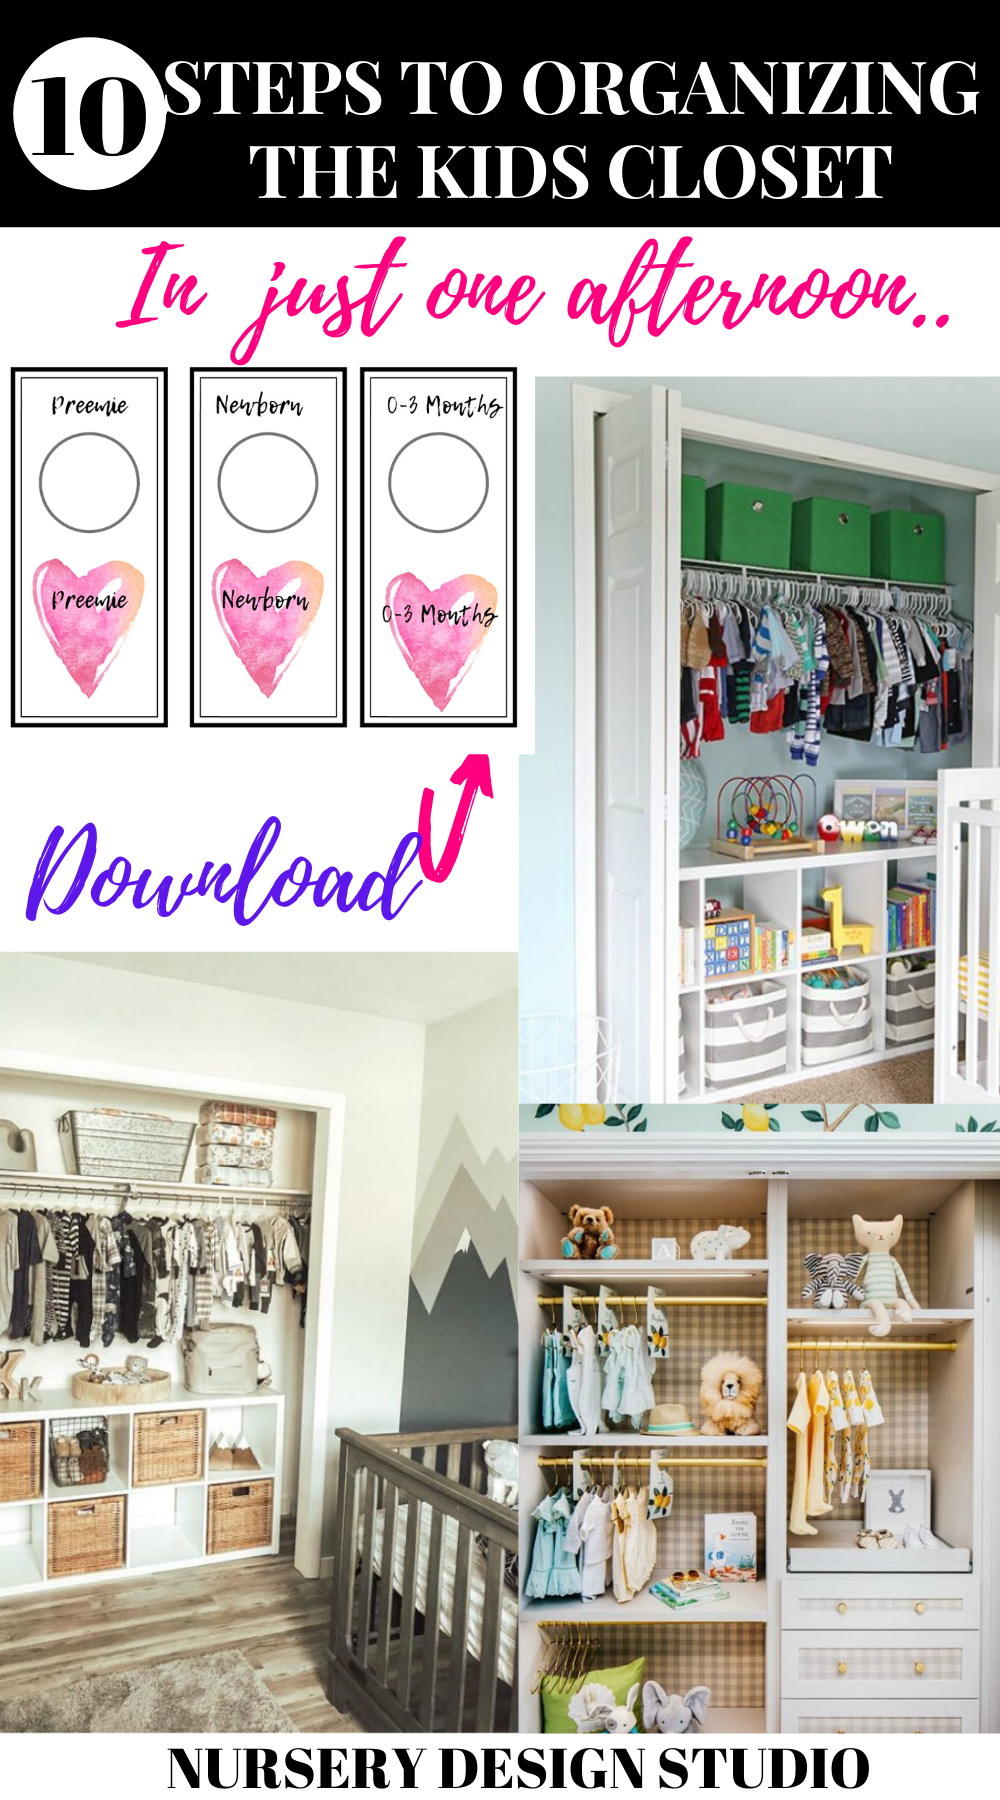 STEPS TO ORGANIZING THE CLOSET